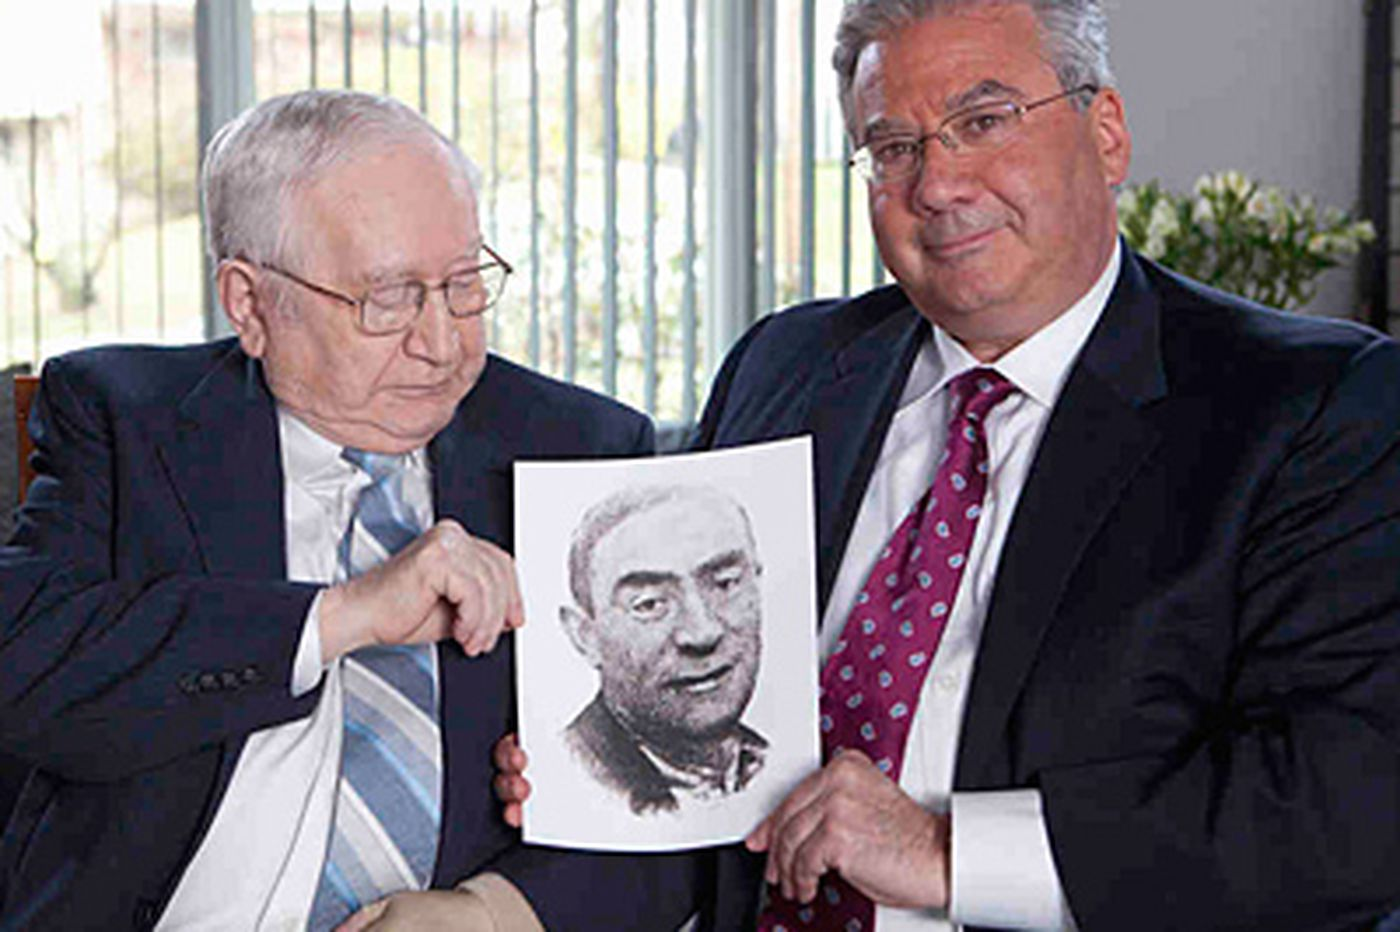 Daniel Rubin: New collaboration makes available records on thousands of Holocaust victims